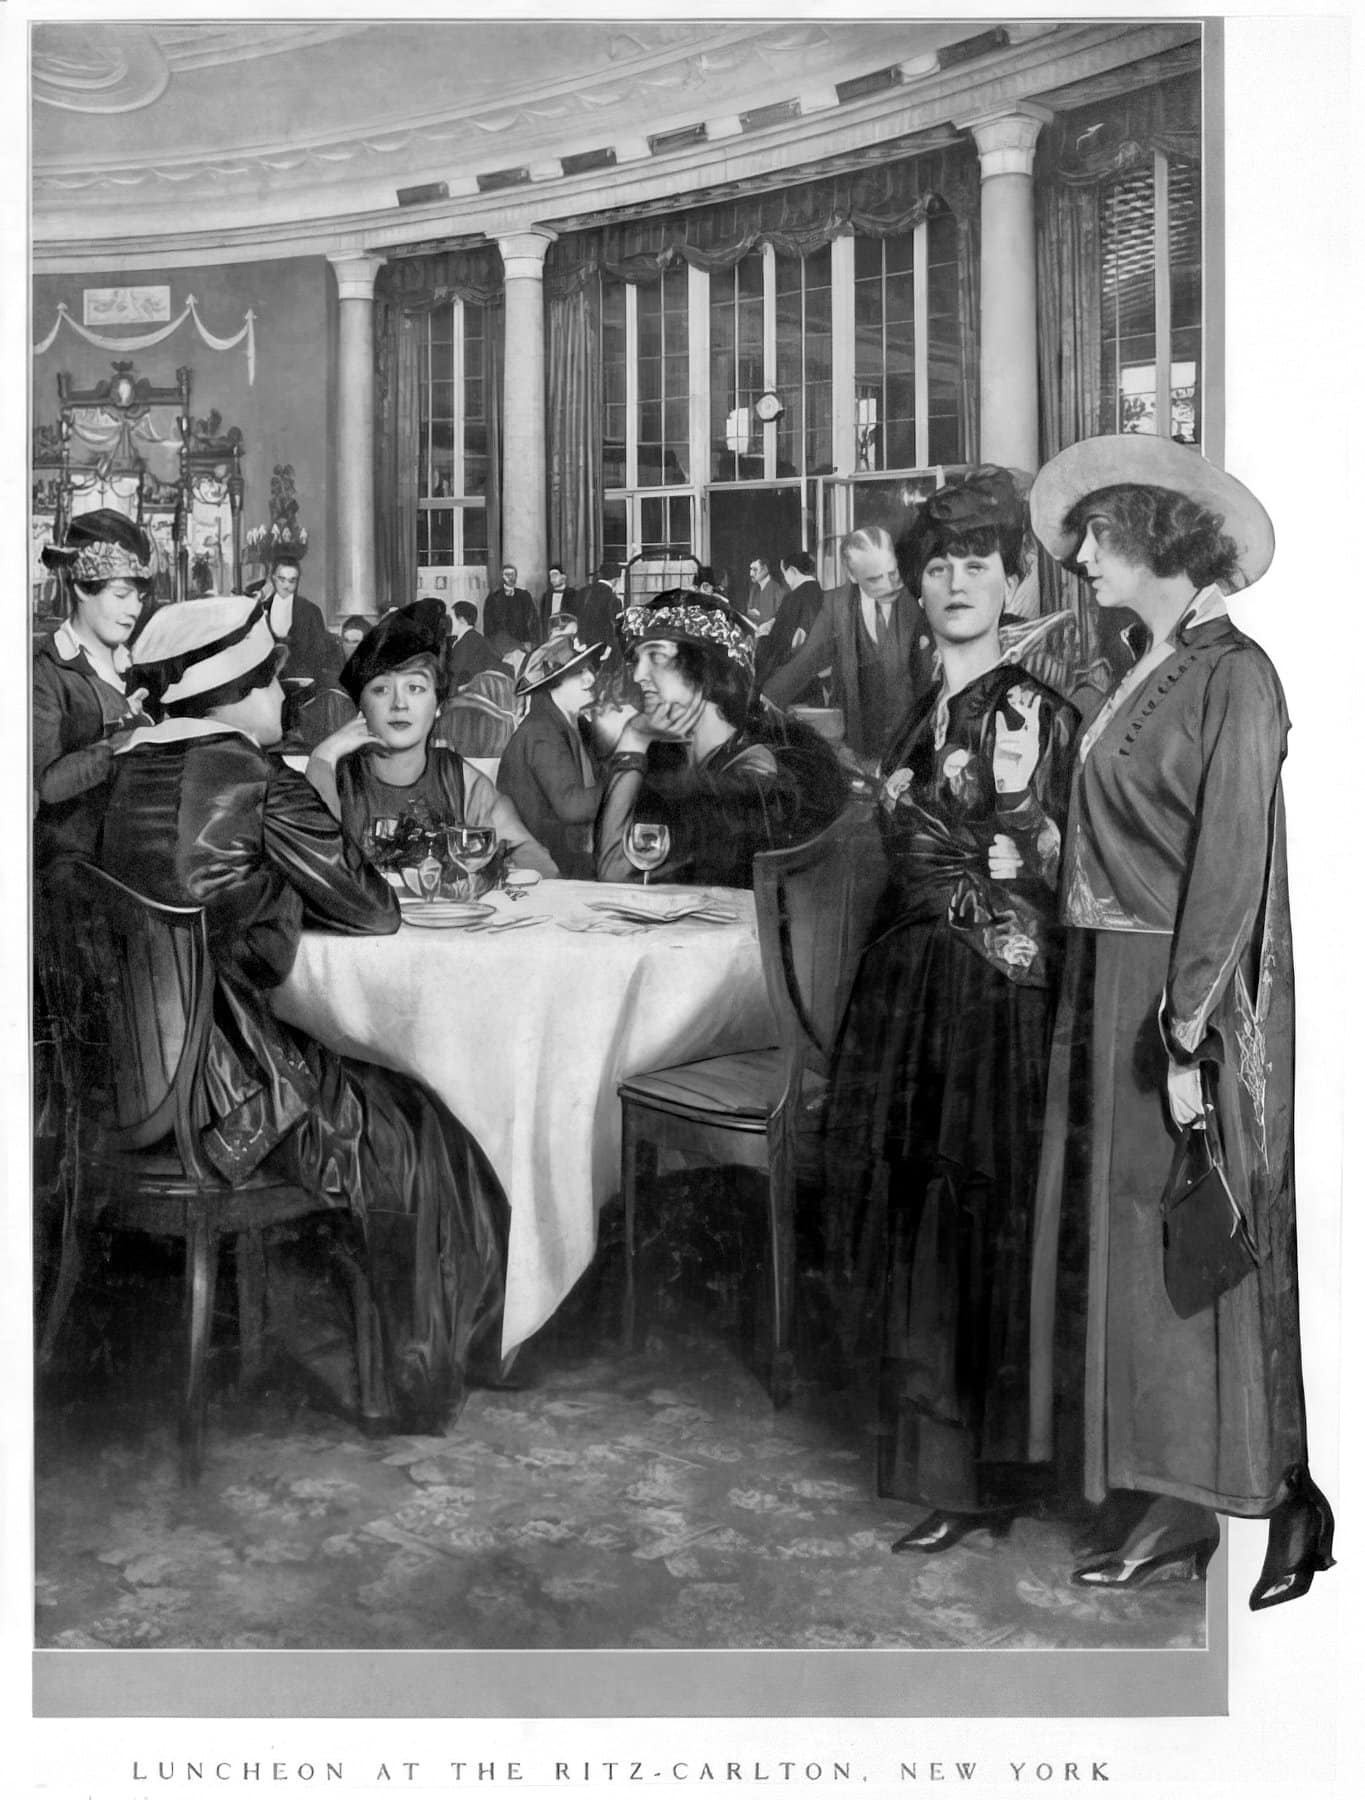 Luncheon at the old Ritz-Carlton Hotel in New York (1915) - ClickAmericana com